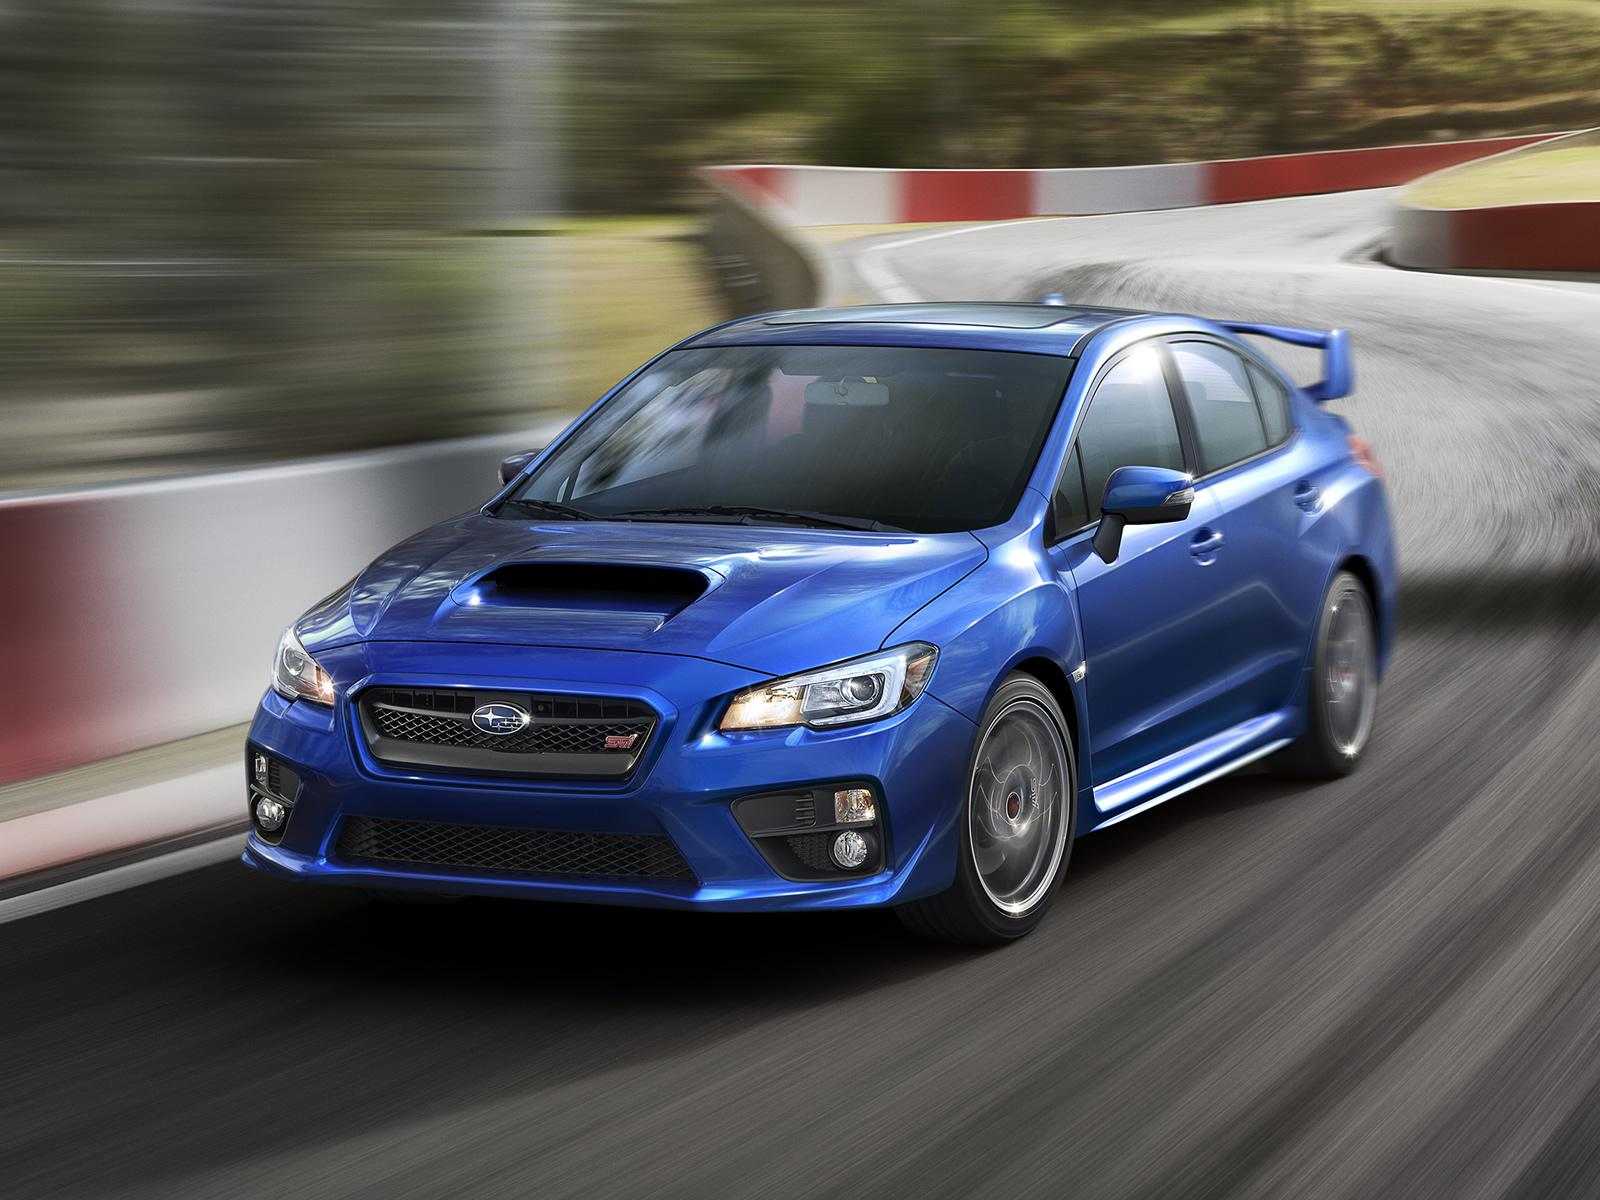 subaru cars news 2015 wrx sti officially revealed. Black Bedroom Furniture Sets. Home Design Ideas